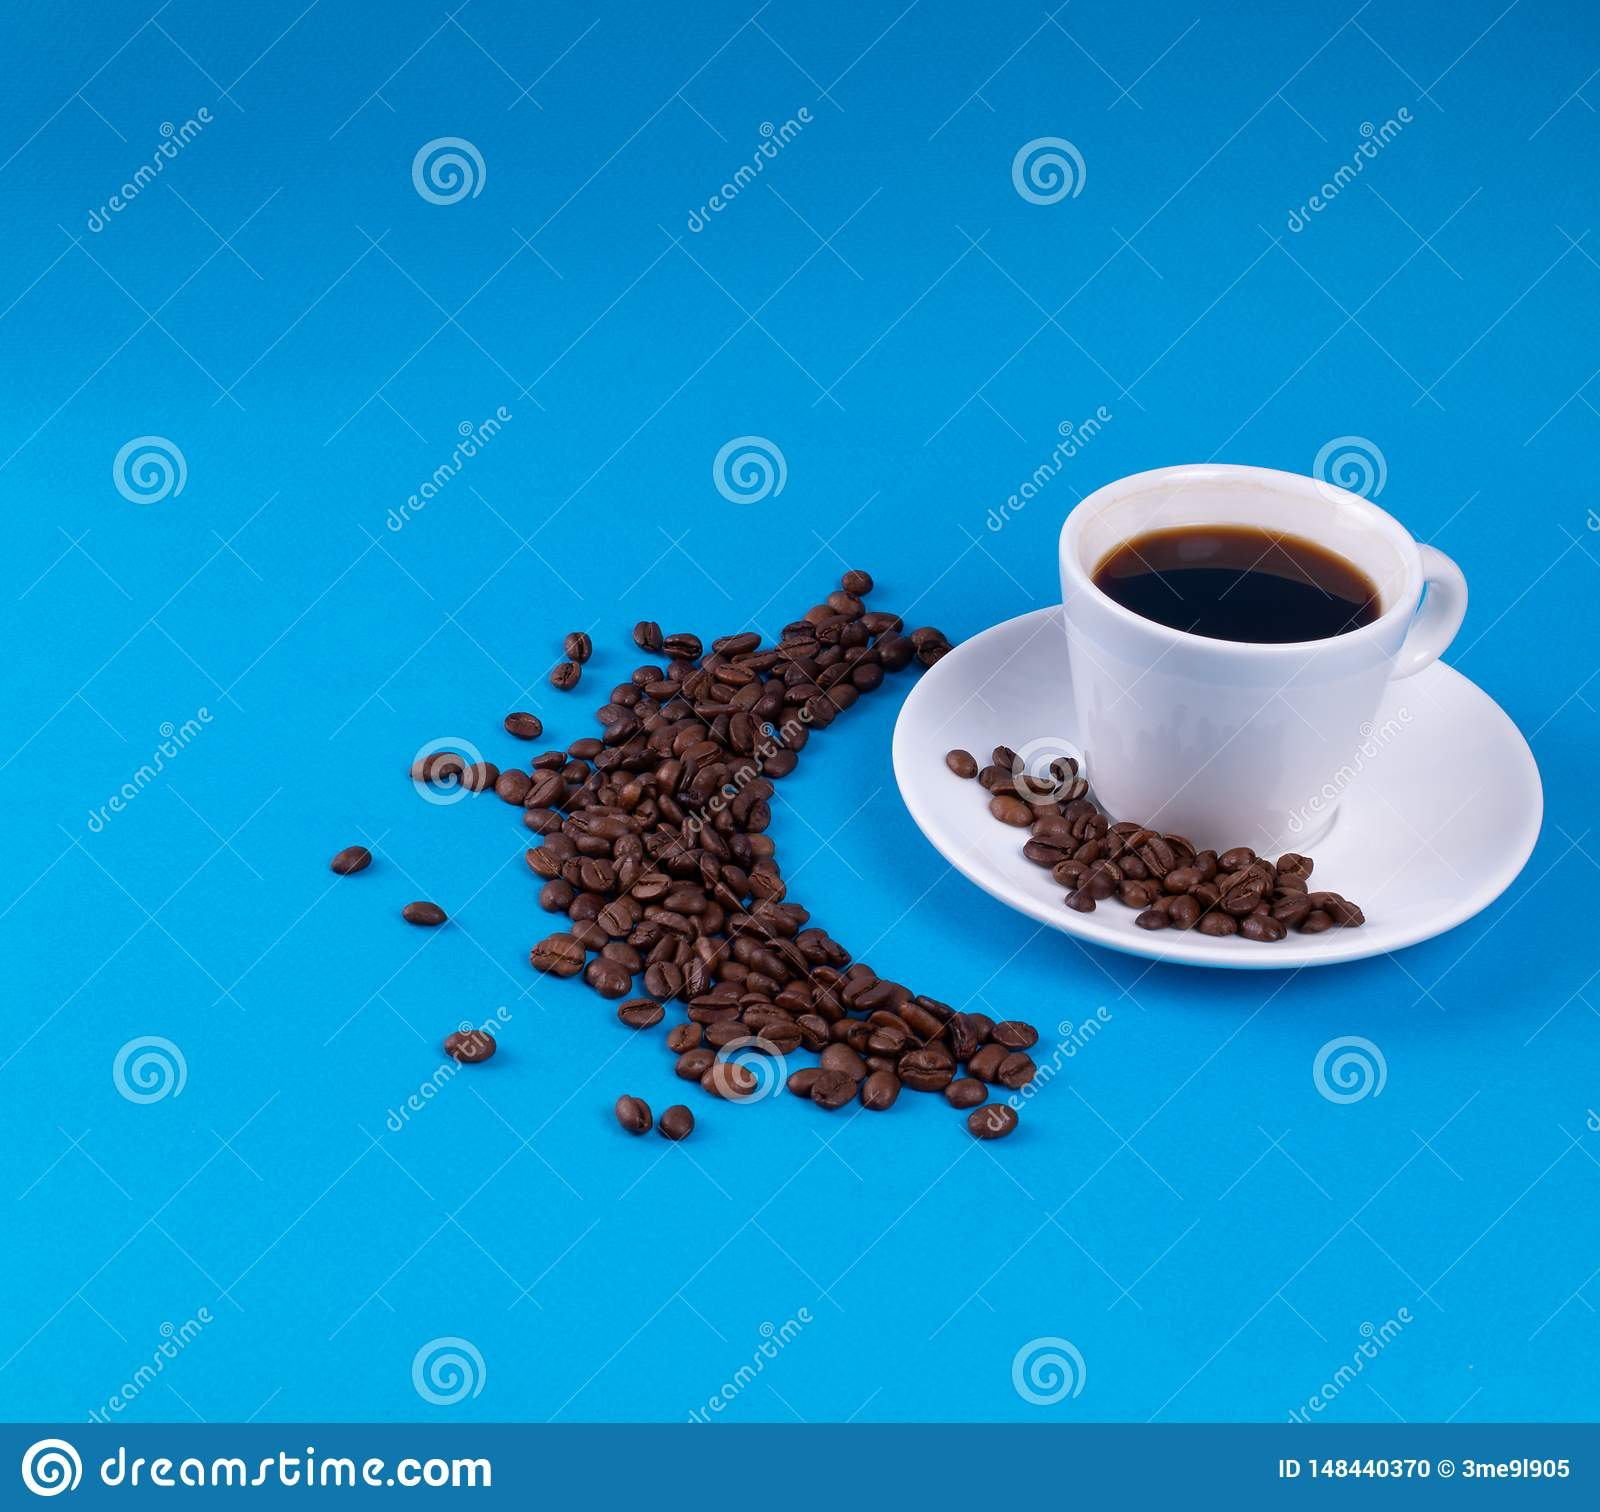 Coffee beans are scattered in a crescent next to white china on a blue background